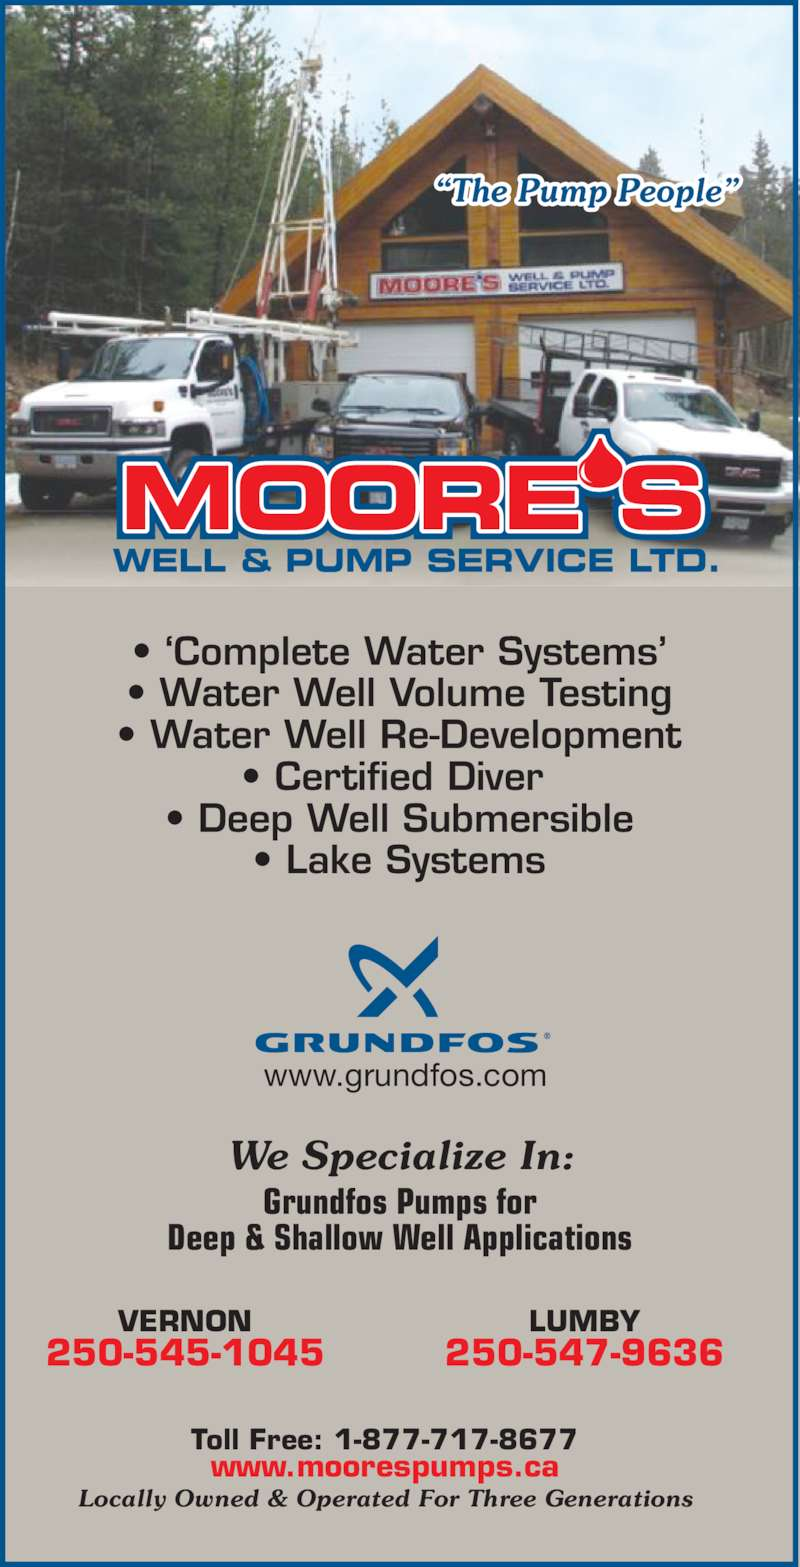 """Moore's Well & Pump Service Ltd (250-545-1045) - Display Ad - WELL & PUMP SERVICE LTD. www.grundfos.com • Water Well Volume Testing • Water Well Re-Development • Certified Diver  • Deep Well Submersible • Lake Systems VERNON 250-545-1045 LUMBY 250-547-9636 • 'Complete Water Systems' www.moorespumps.ca """"The Pump People"""" Locally Owned & Operated For Three Generations Toll Free: 1-877-717-8677 We Specialize In: Grundfos Pumps for Deep & Shallow Well Applications"""